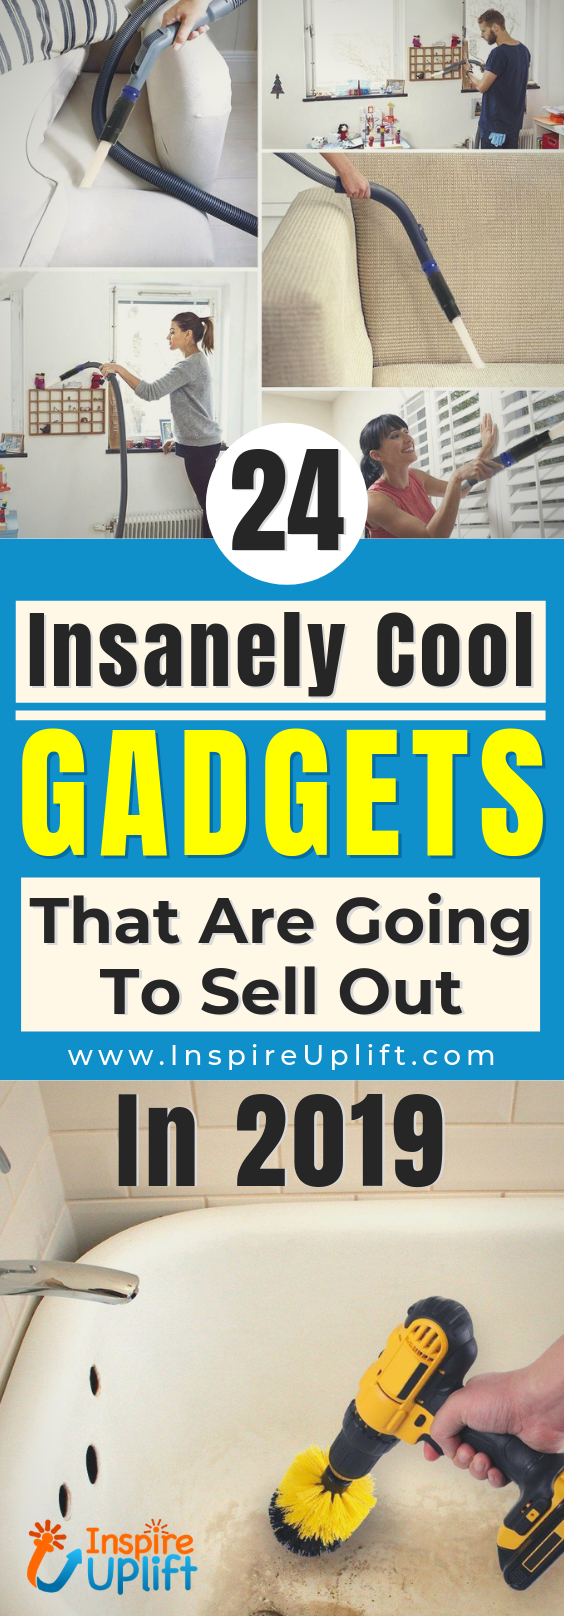 24 Insanely Cool Gadgets That Are Going To Sell Out In 2019 😍 InspireUplift.com